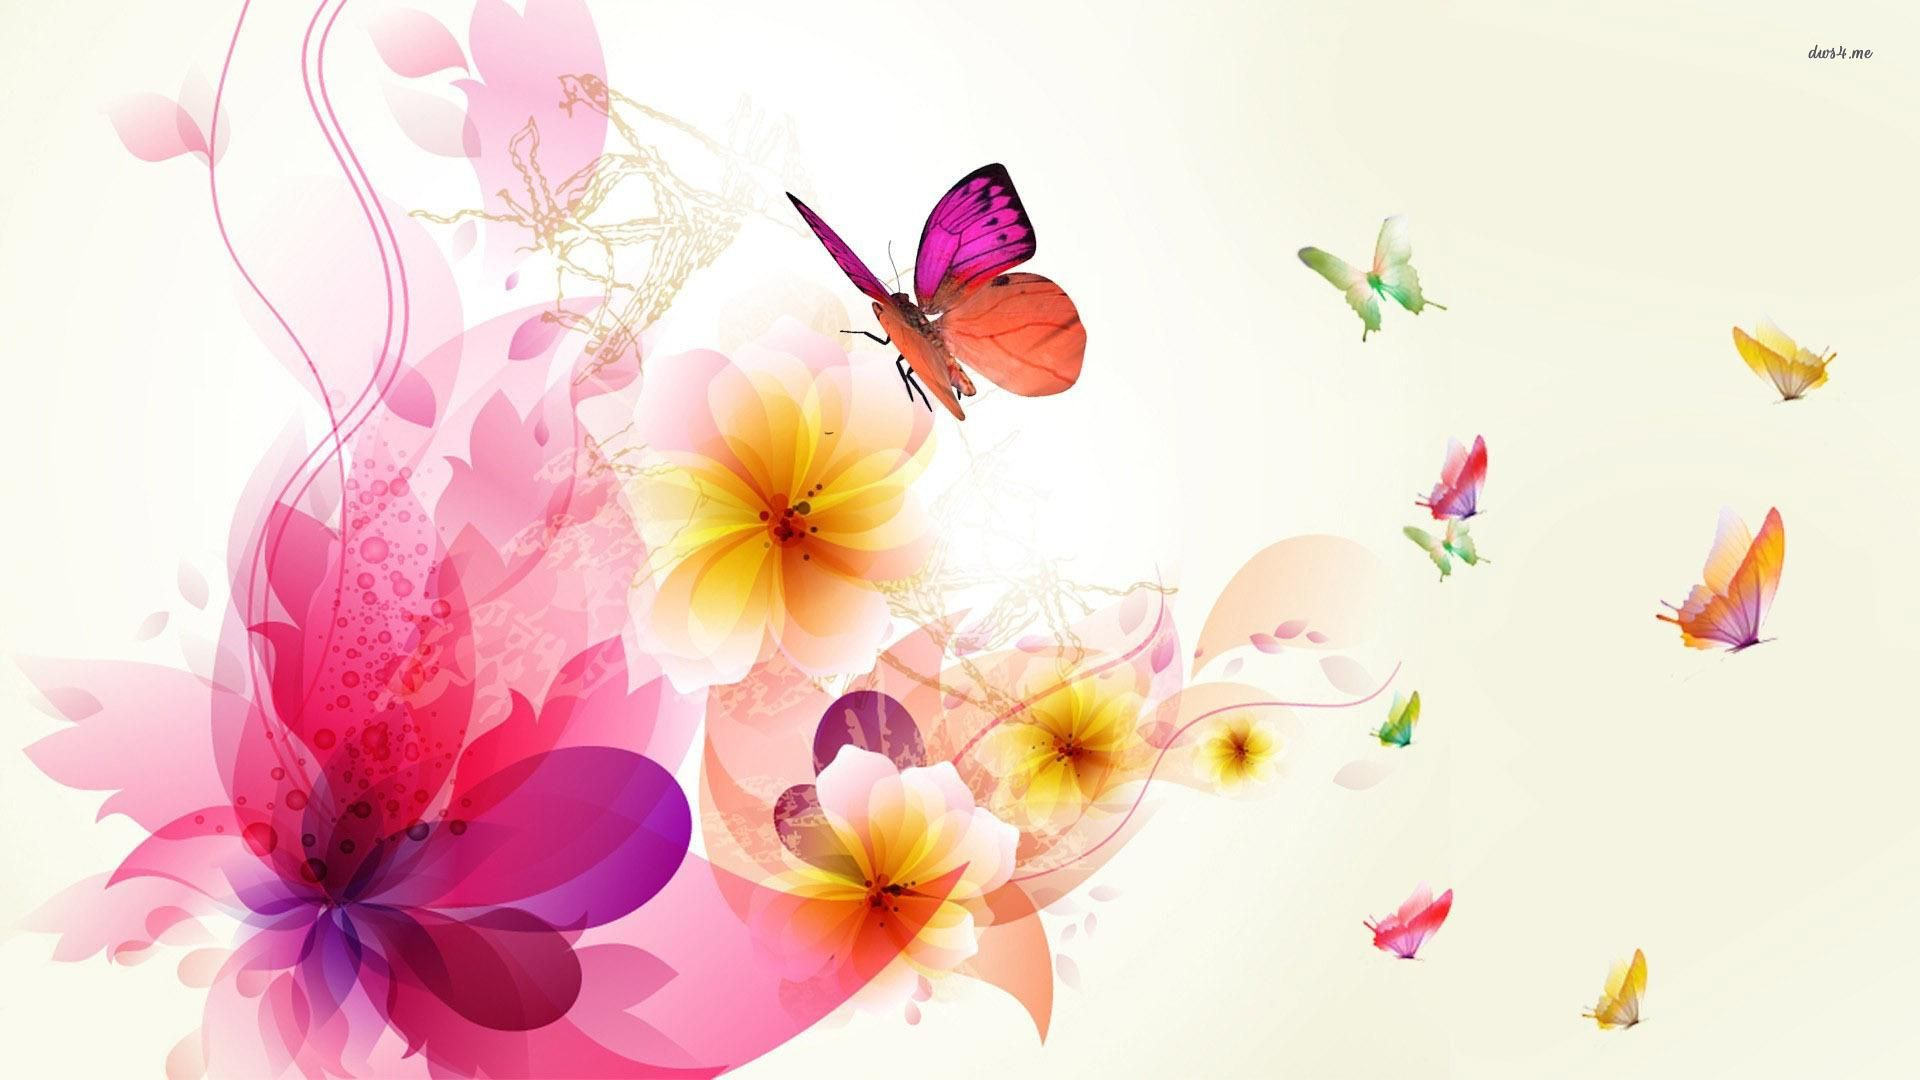 Pin by Jasmin Puddig on Graphics | Pinterest | 3d wallpaper ... for Colorful Butterfly Wallpapers  45ifm